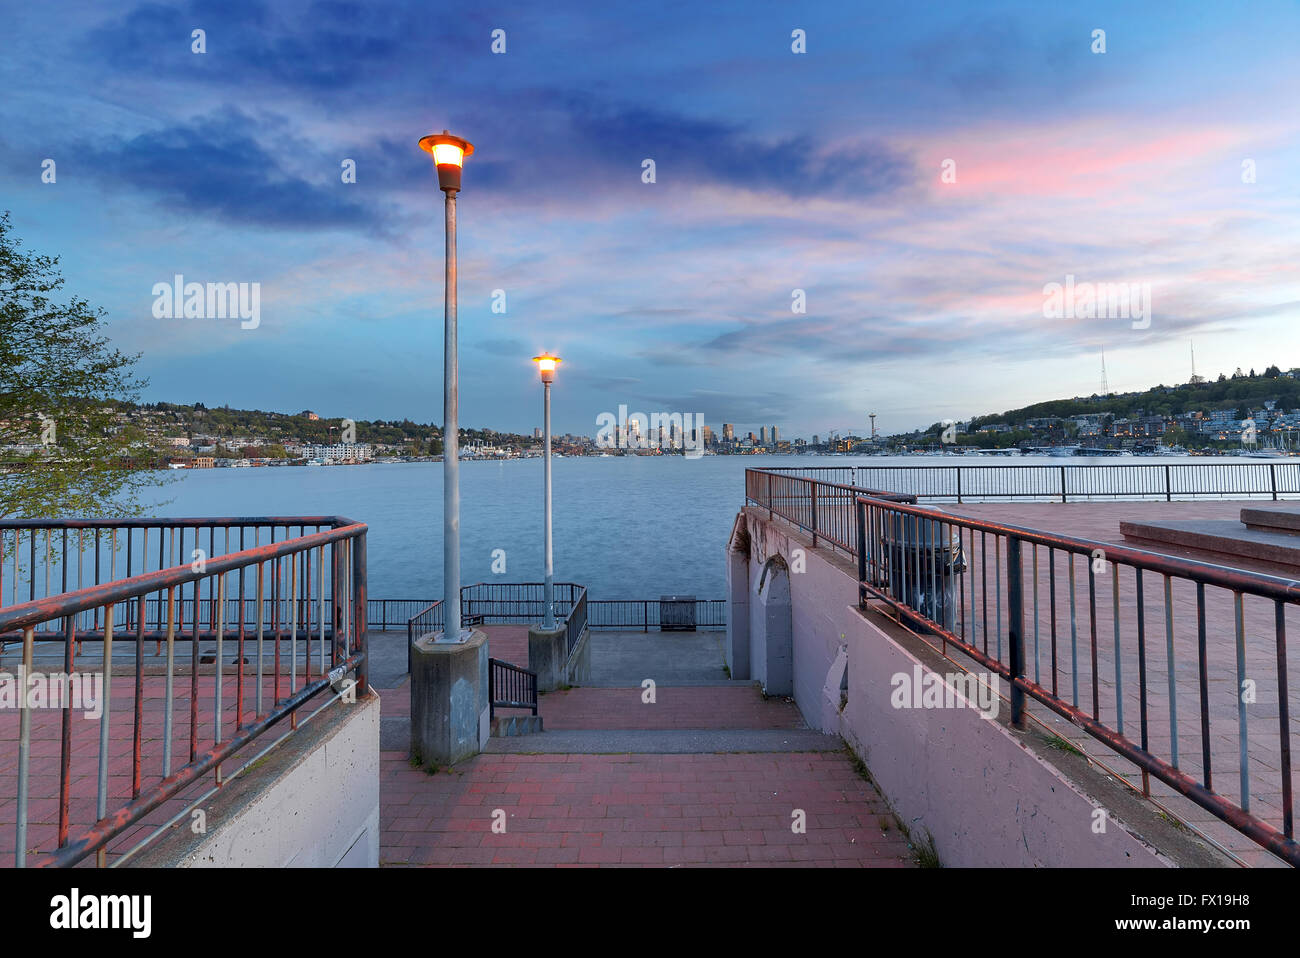 Gas Works Park with city skyline along Lake Union in Seattle Washington after sunset - Stock Image